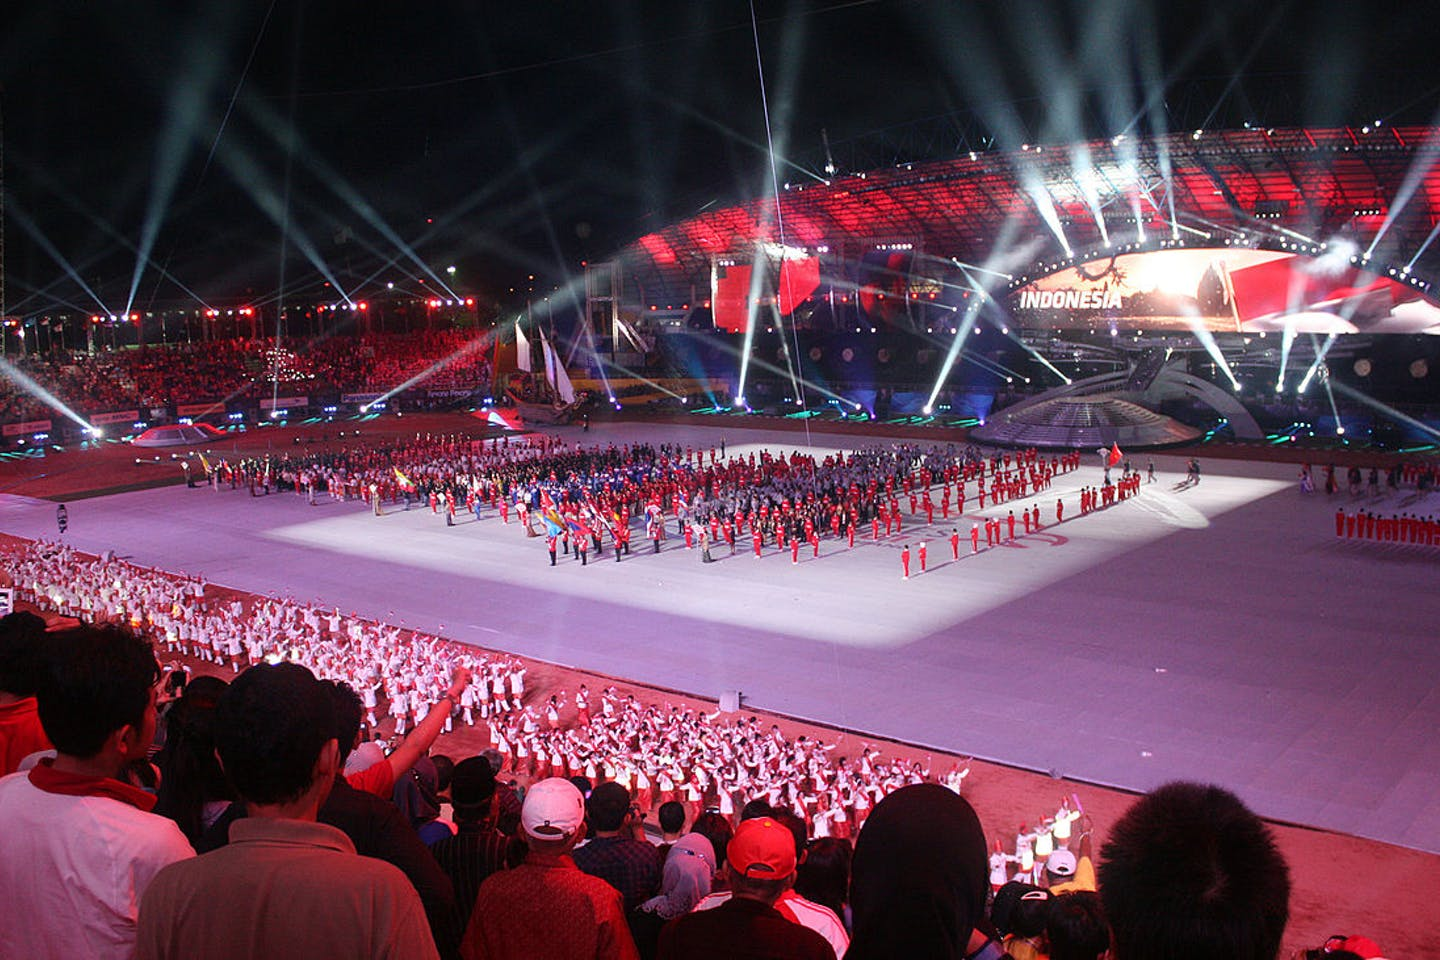 2011 SEA Games opening